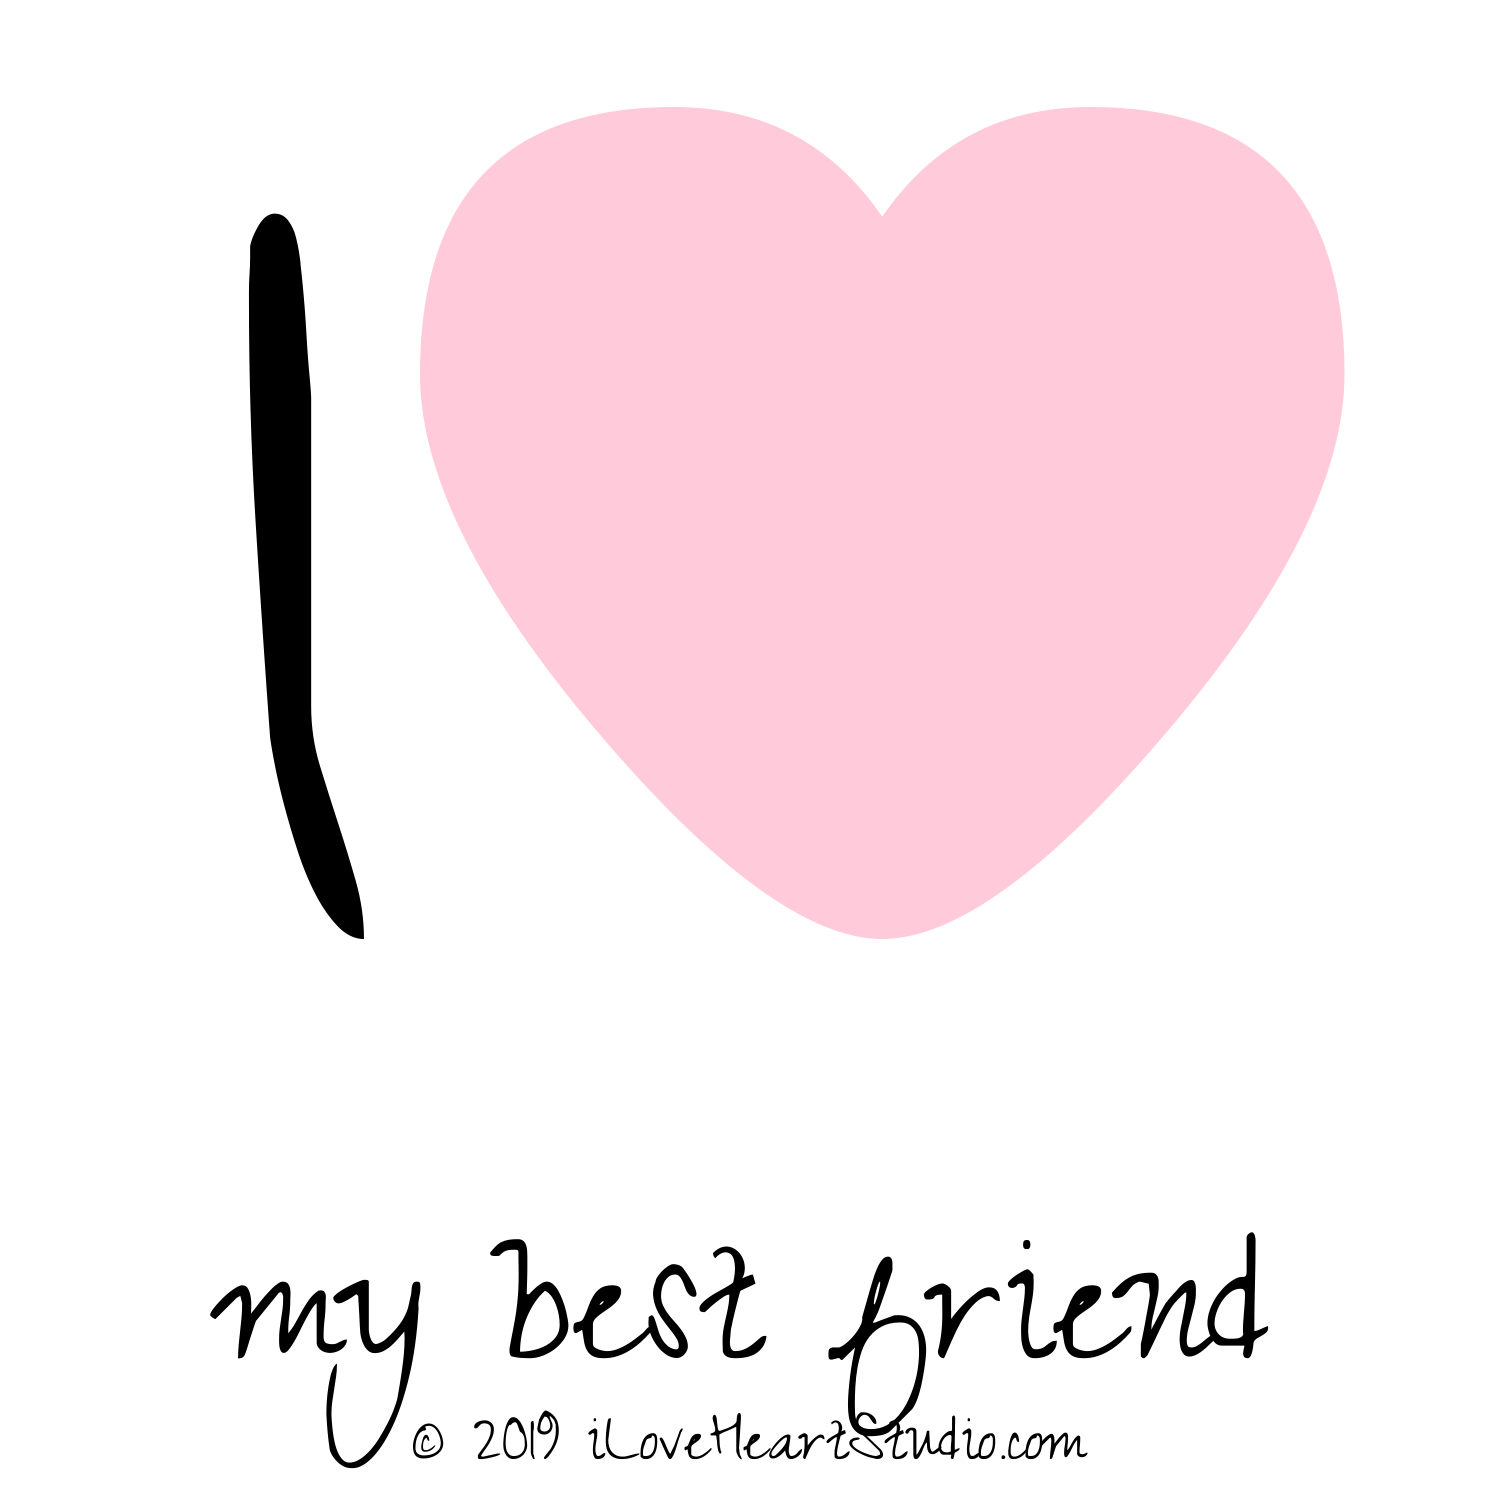 i [love heart] my best friend' design on t-shirt, poster, mug and